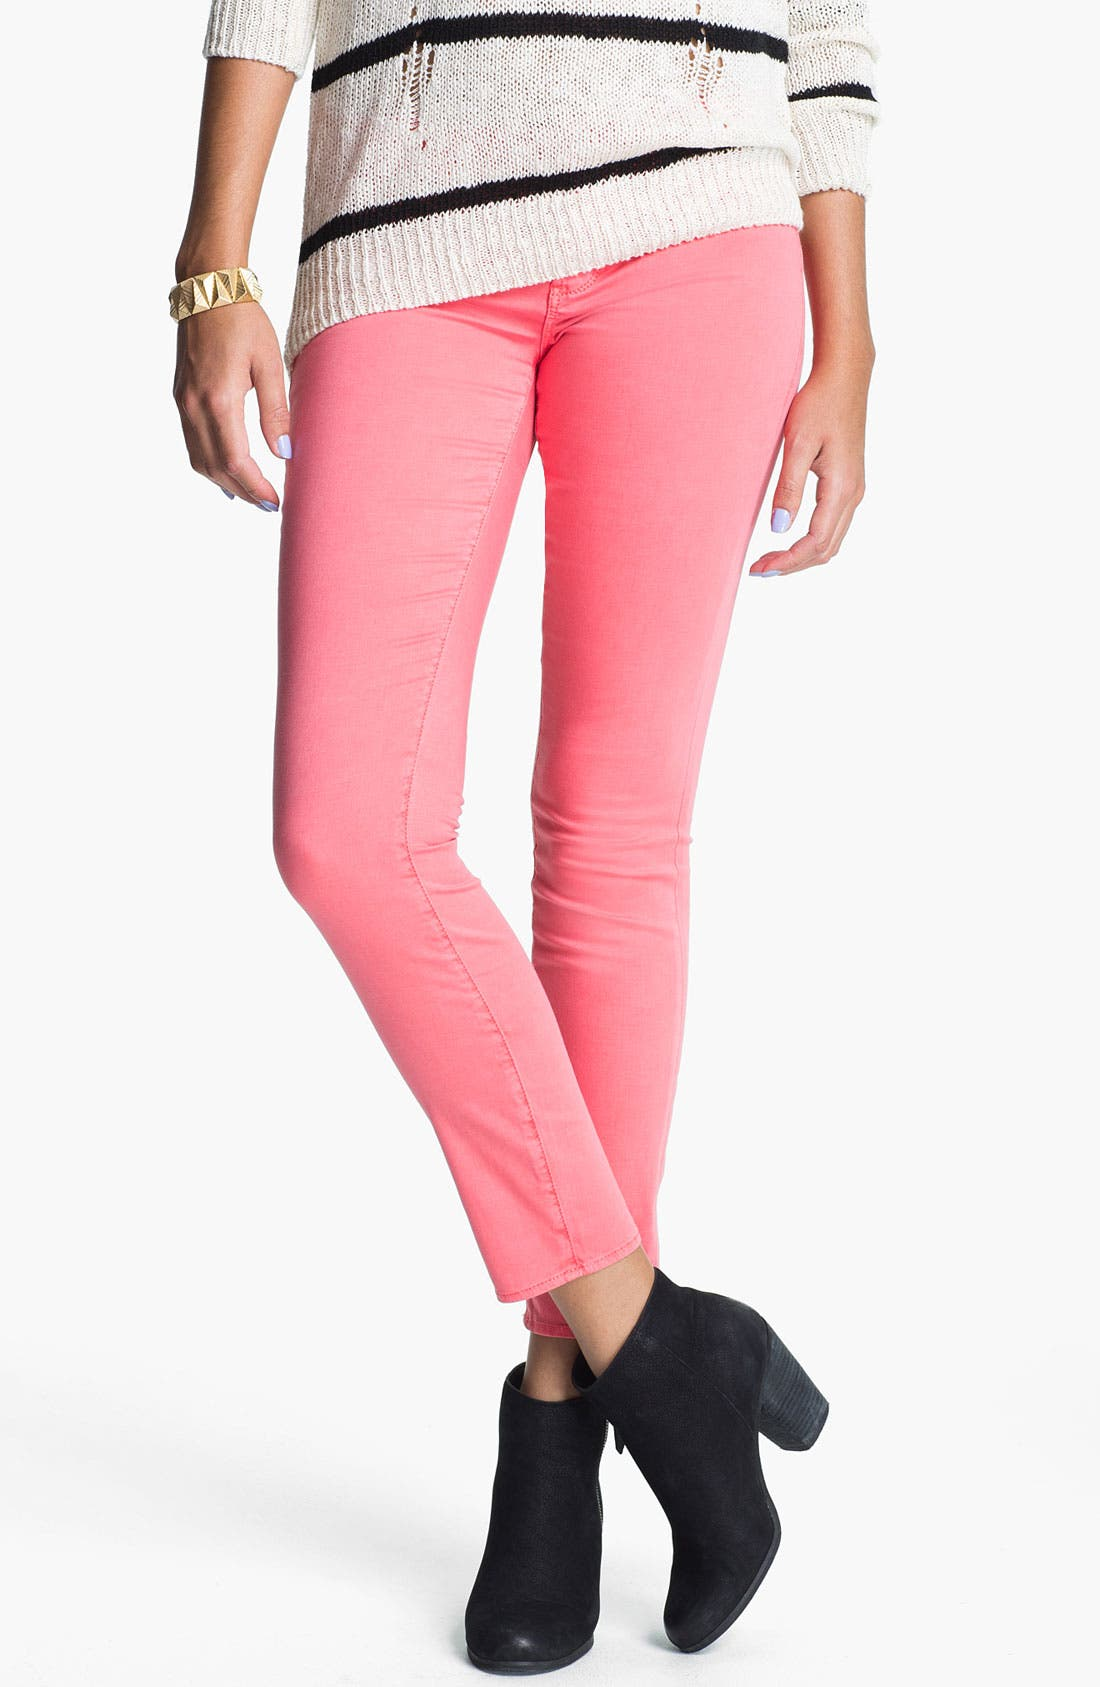 Alternate Image 1 Selected - Articles of Society 'Olivia' Skinny Jeans (Berry) (Juniors)